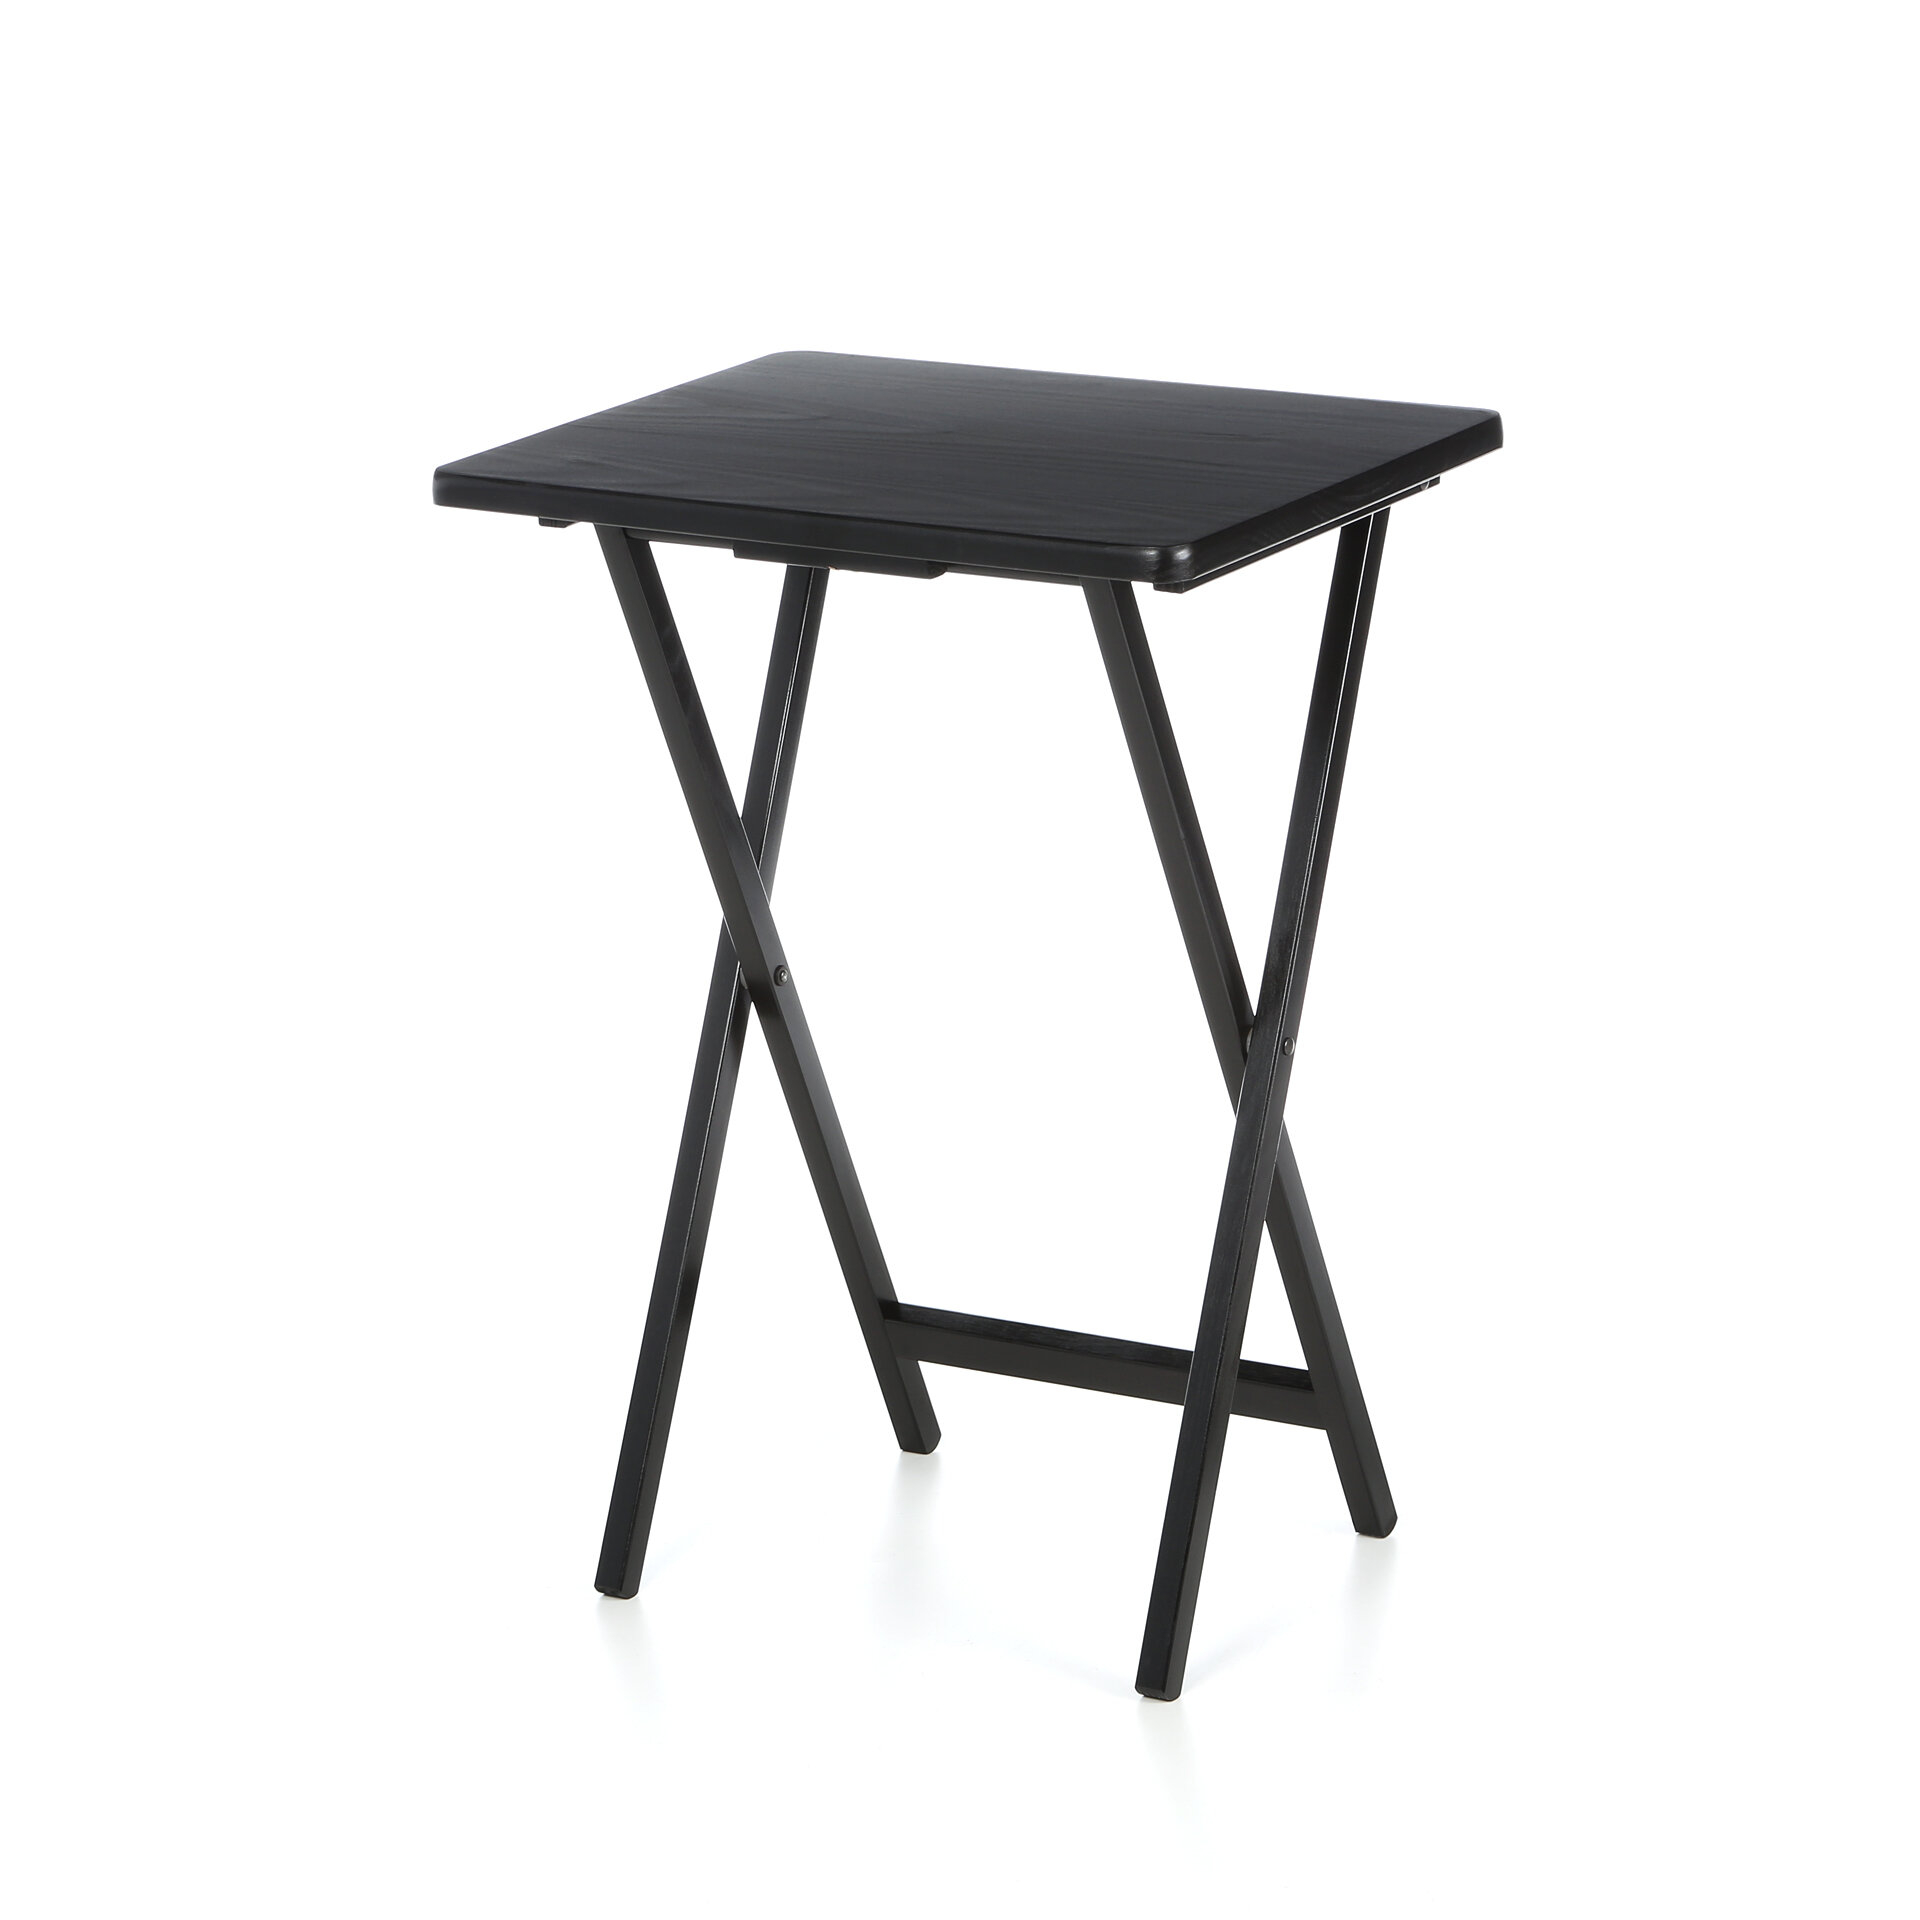 Stand set of 4 folding table for movie dinners snack  sc 1 st  Foter & Folding Snack Tables With Stand - Foter